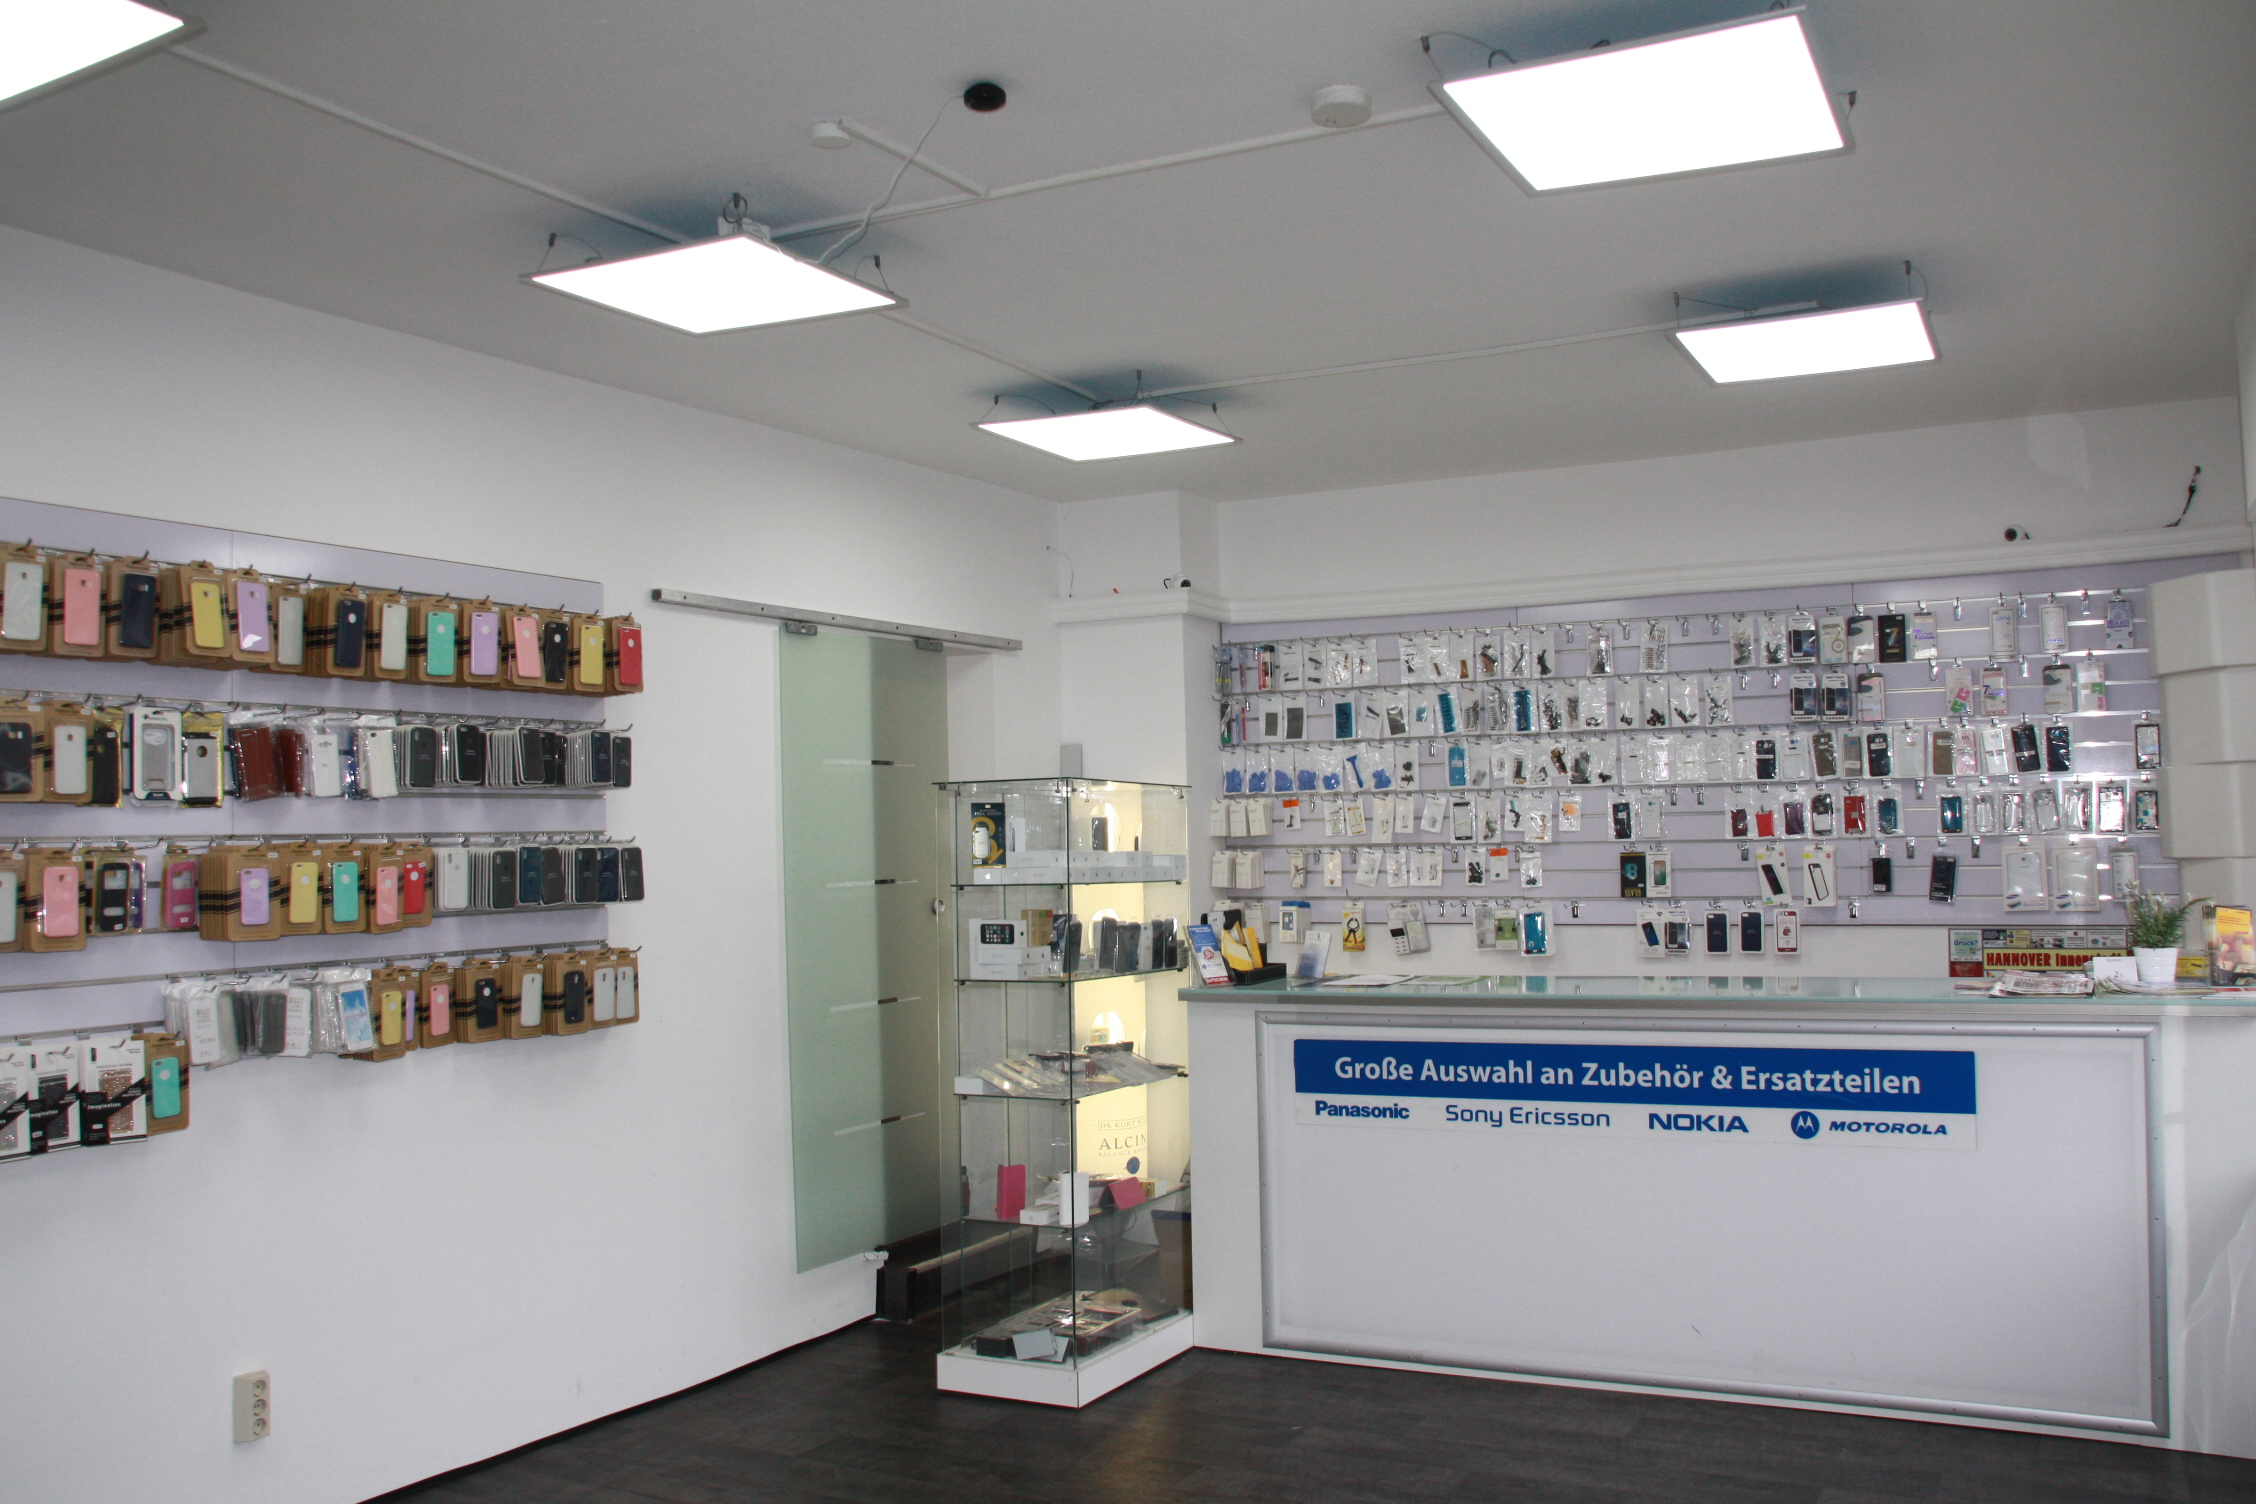 Ainxphone Handy Reparatur Hannover